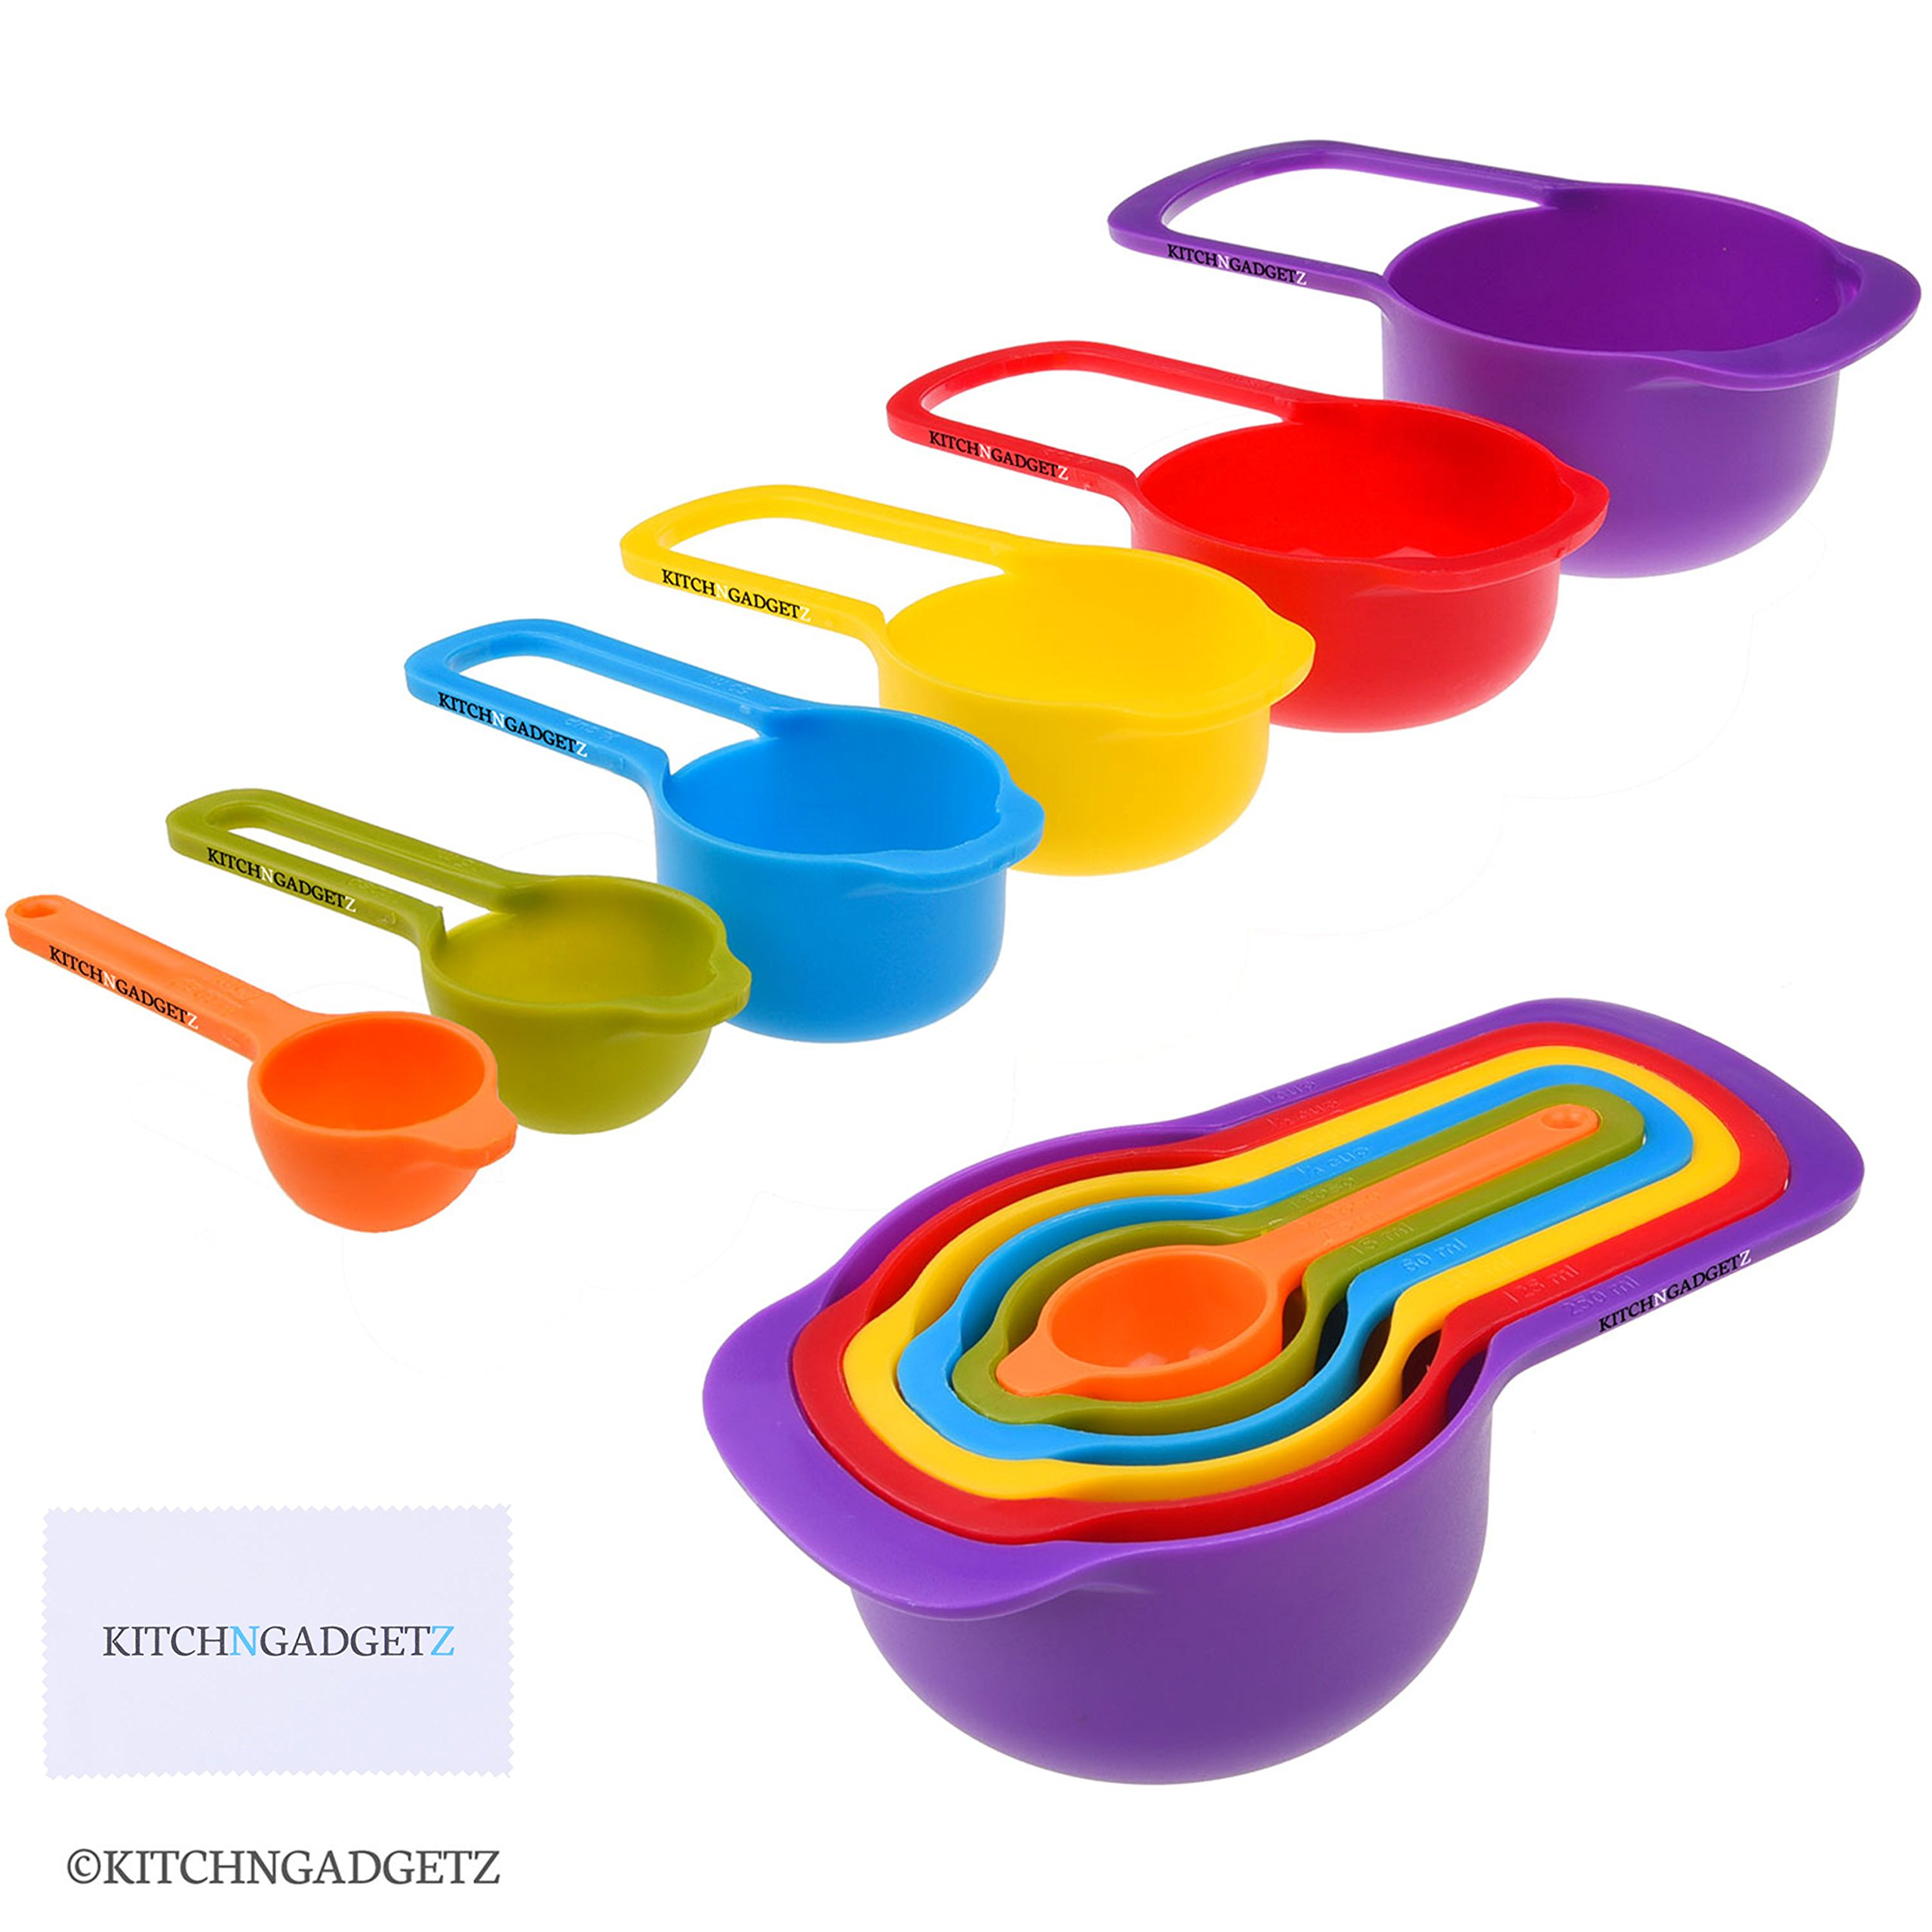 Set of 6 Measuring Cups and Spoons - Space Saving Design - Colorful - Includes: 1/2 Tbls, 1 Tbls, 1/4 cup, 1/3 cup, 1/2 cup, 1 cup - Durable Plastic - Easy to Clean - Dishwasher Safe